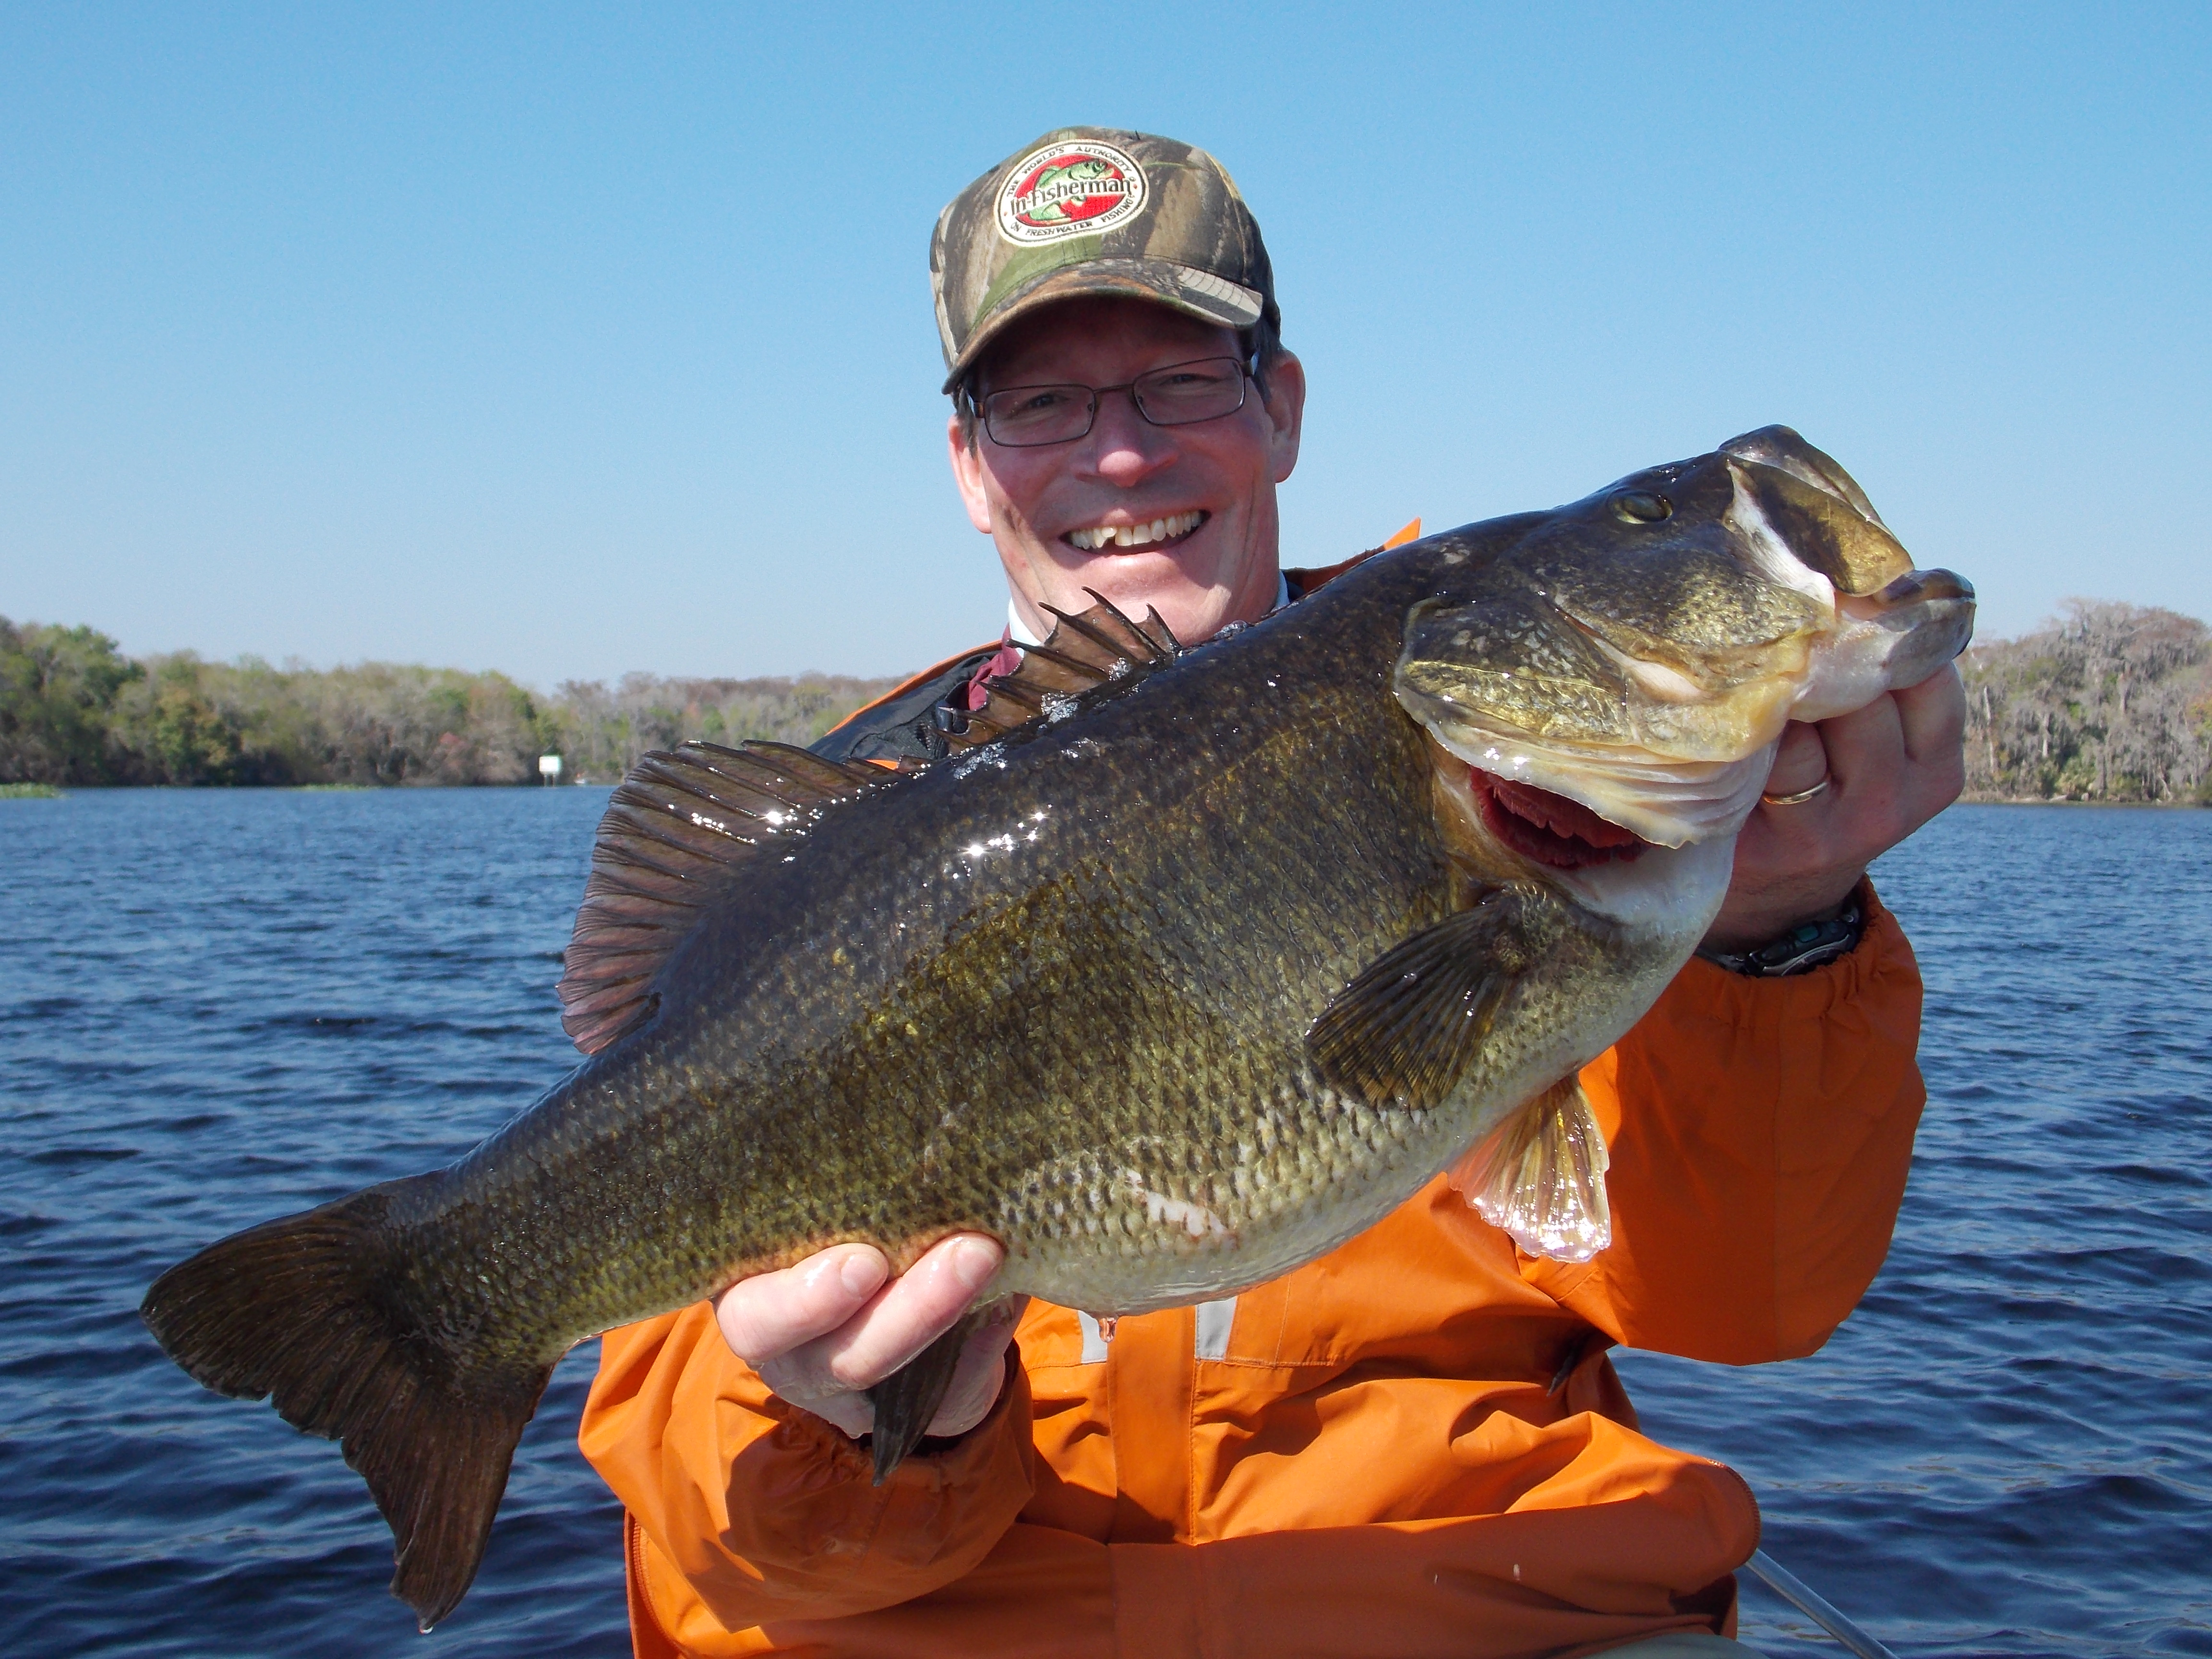 Steve Quinn travels to Florida in search of giant bass in the grass.